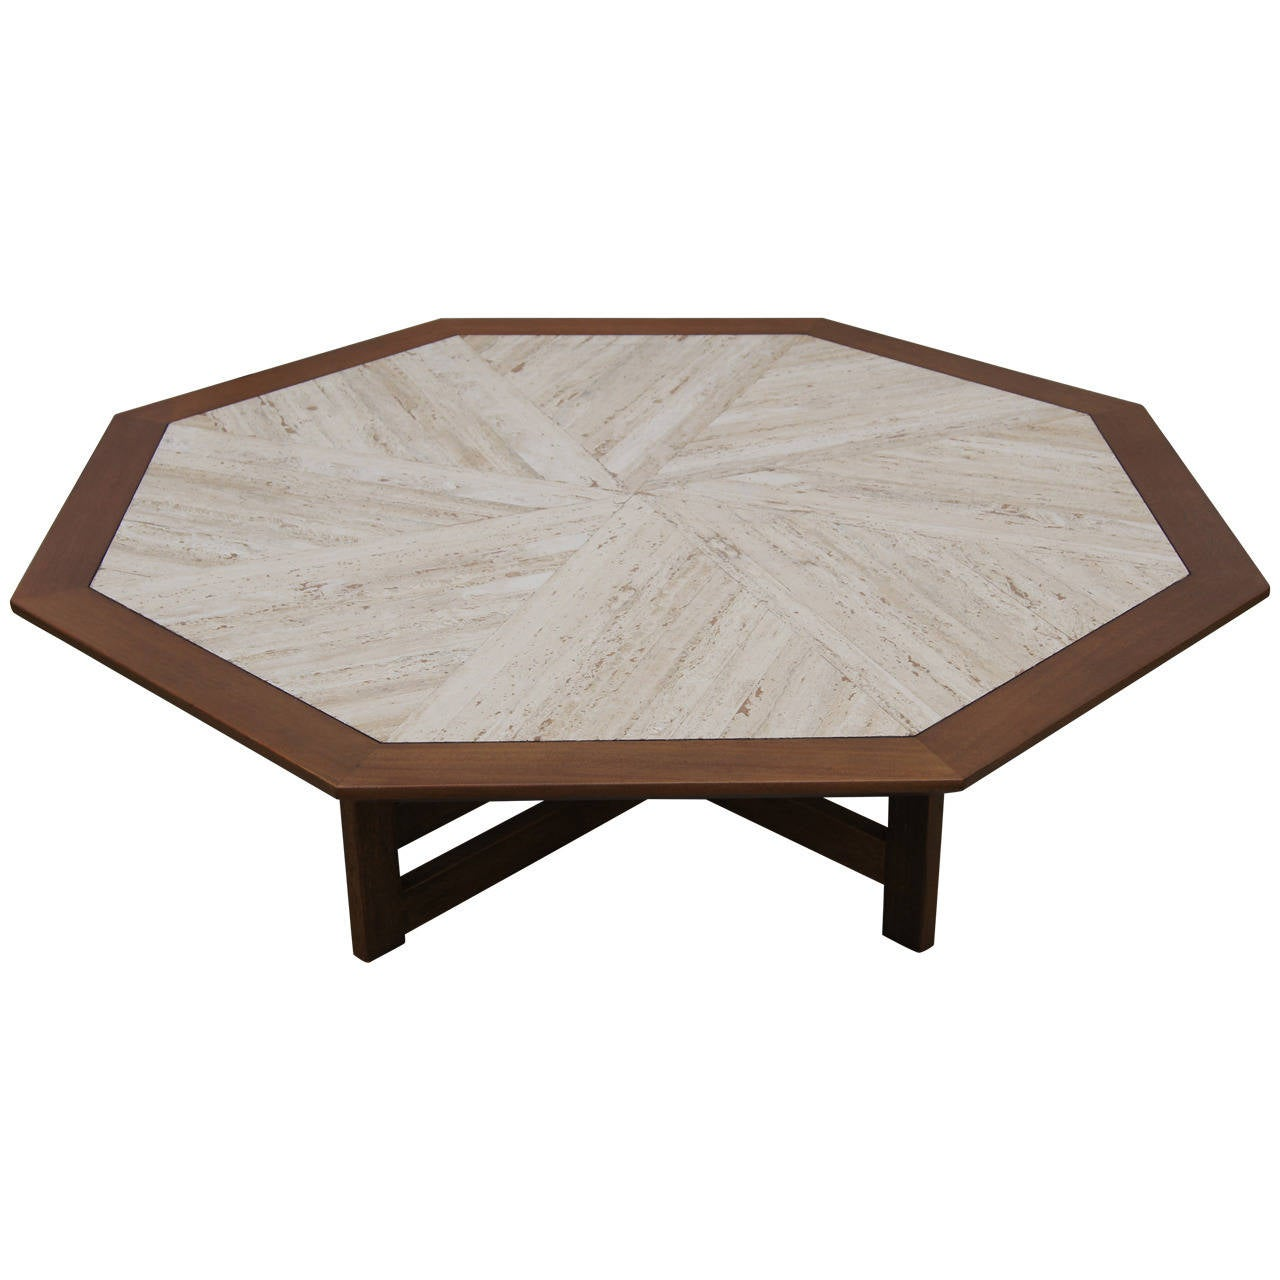 Walnut and travertine coffee table by harvey probber for sale at walnut and travertine coffee table by harvey probber 1 geotapseo Image collections